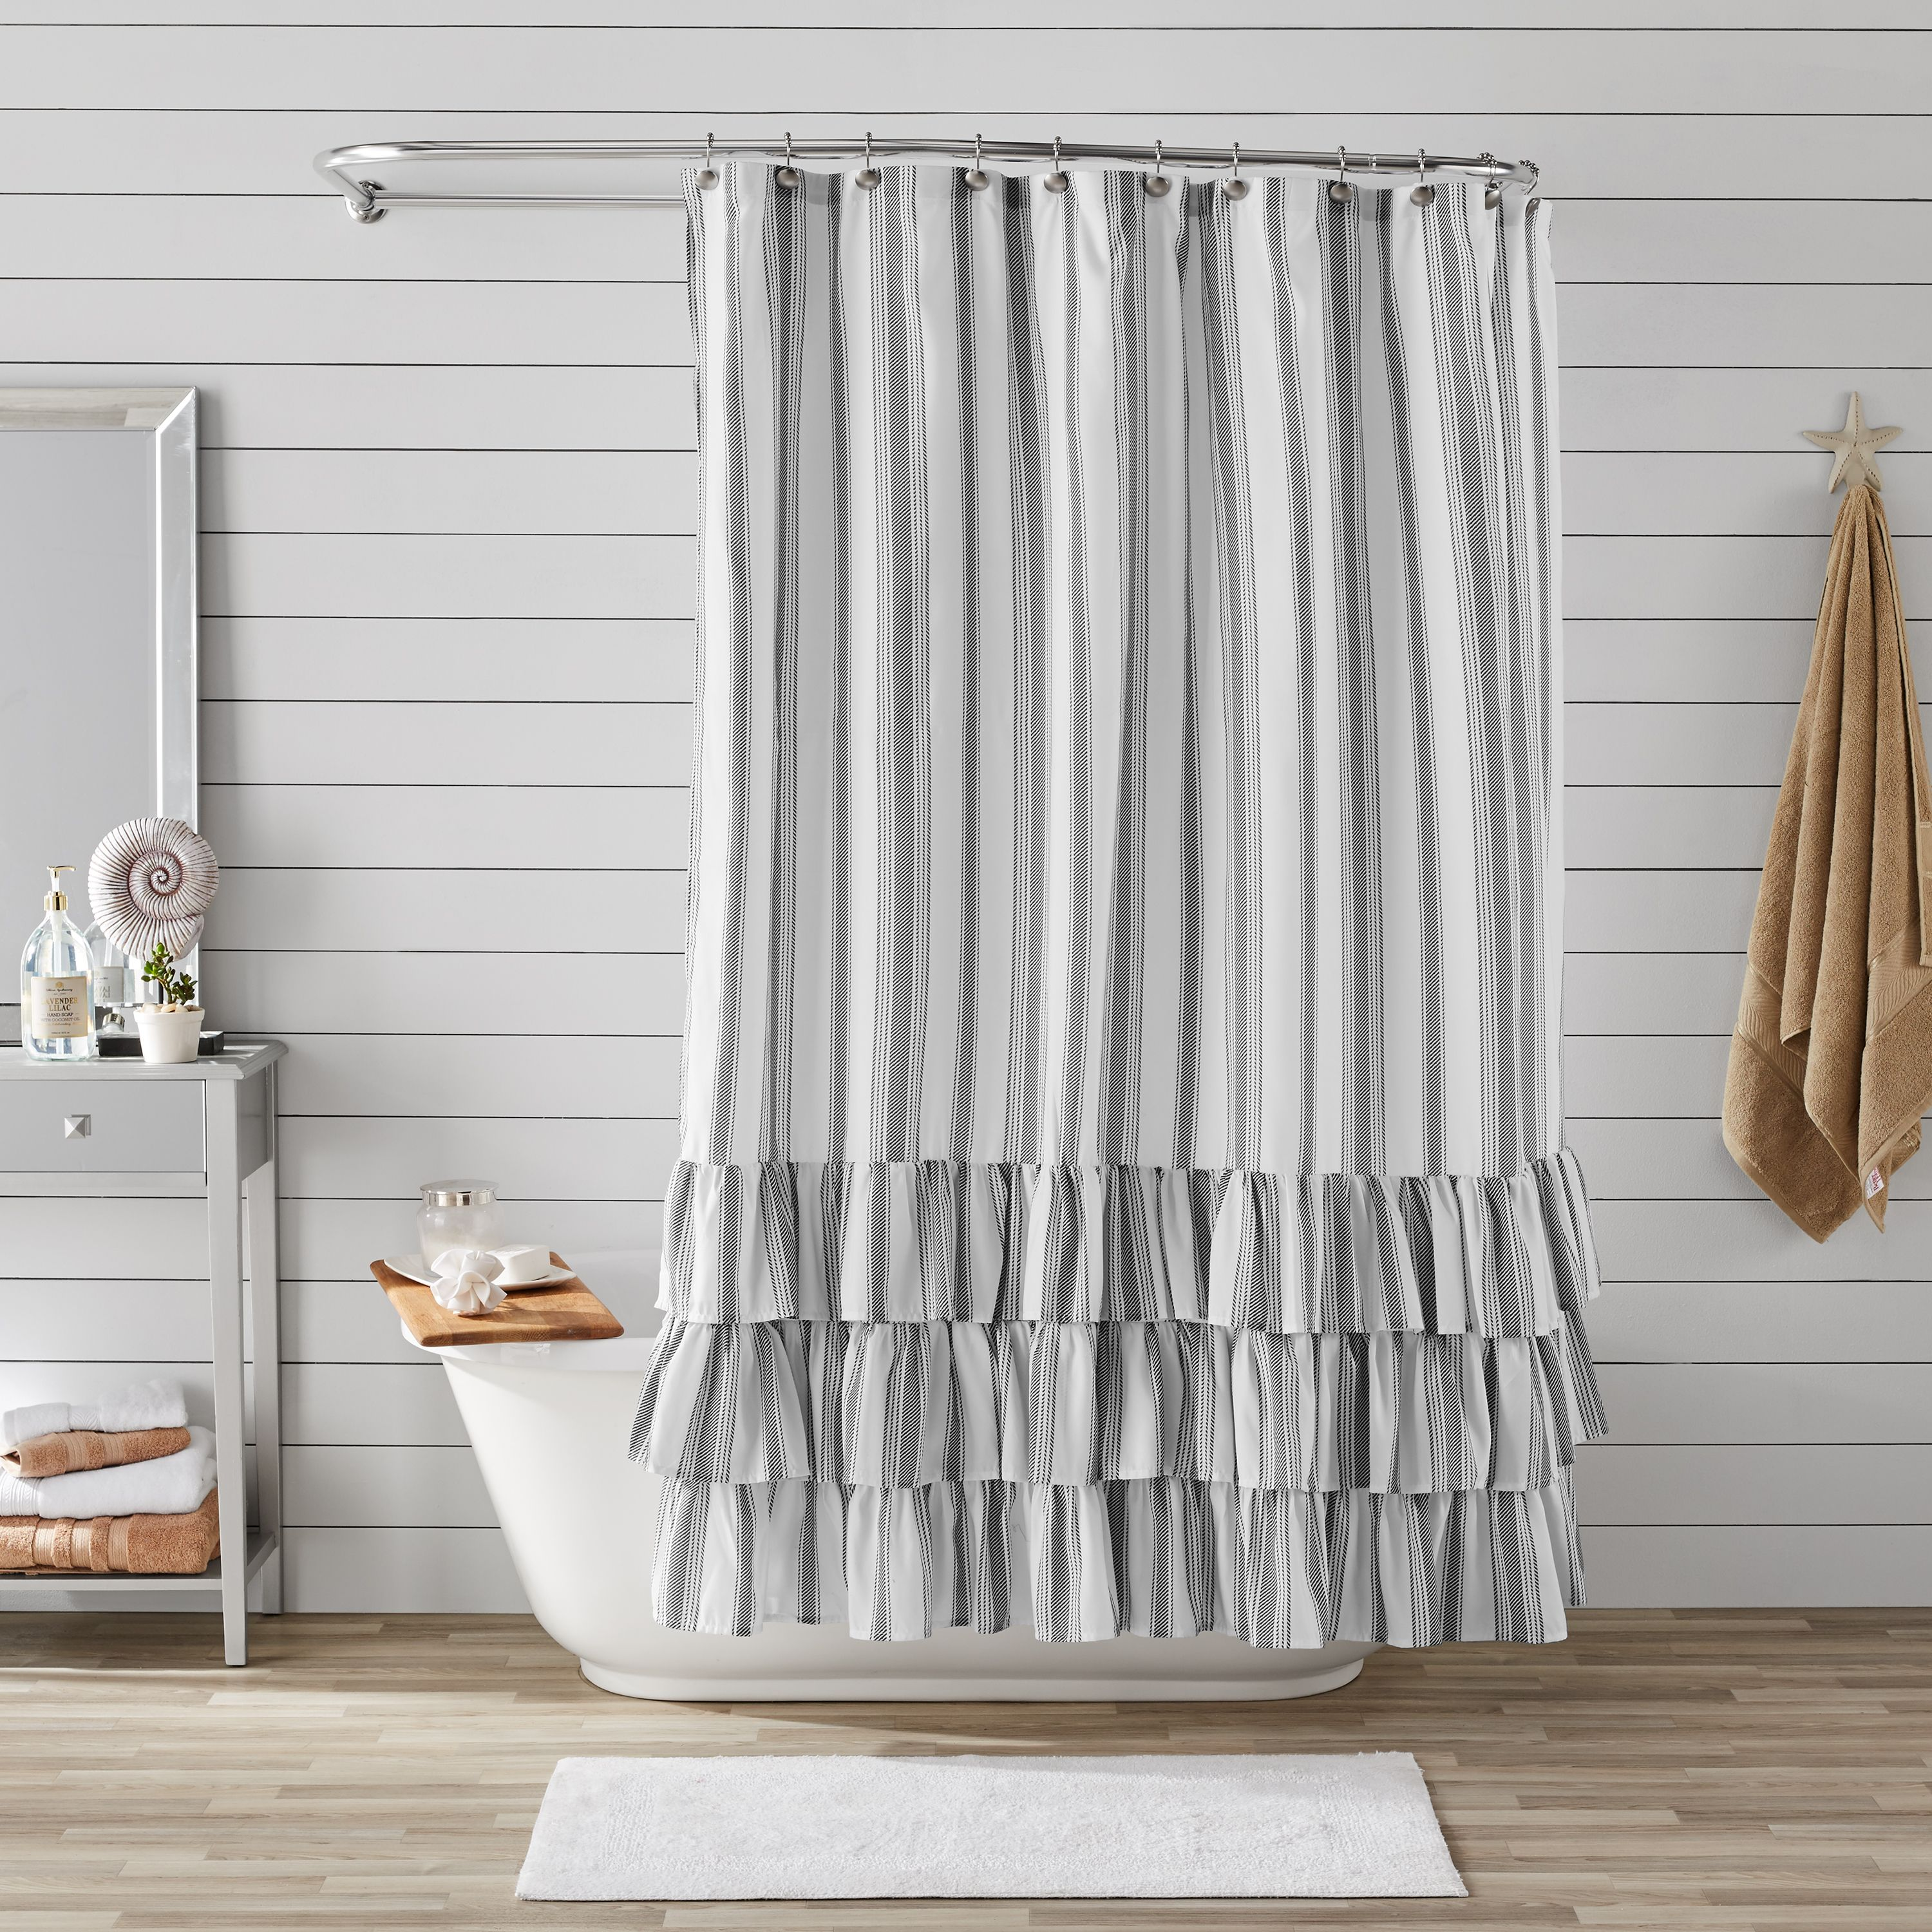 better homes gardens striped ruffle printed polyester microfiber fabric shower curtain ruffled tiered border dark charcoal and white vertical